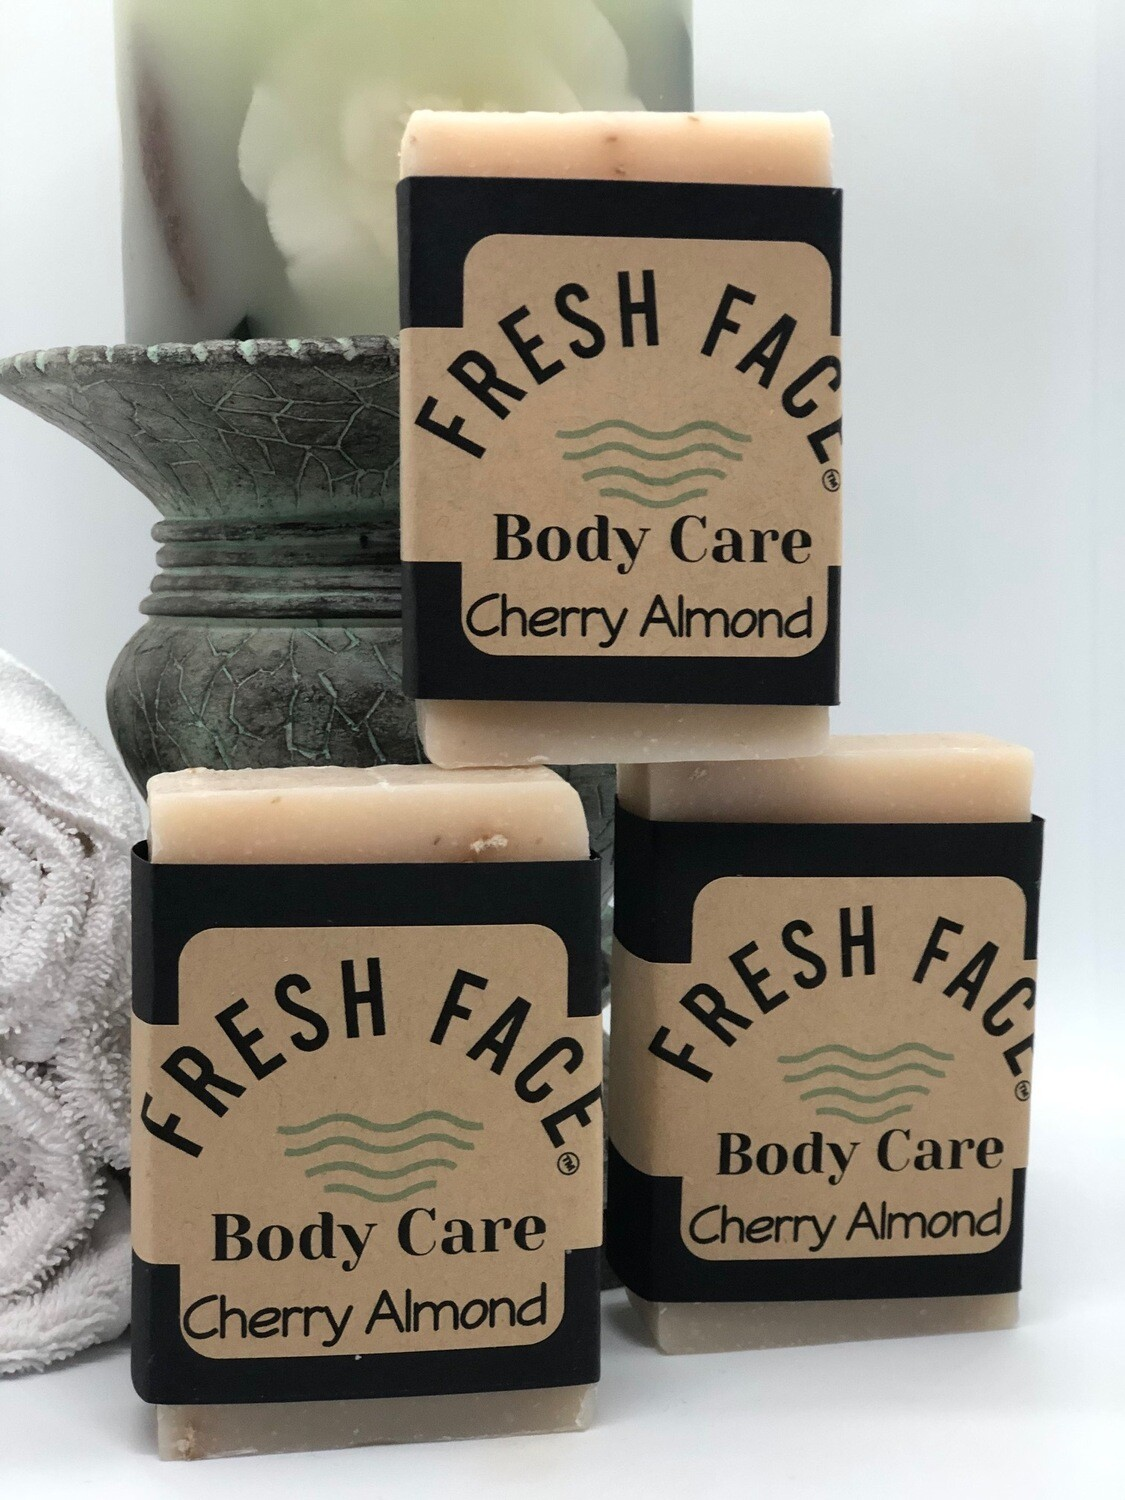 Fresh Face Handmade Natural Soaps